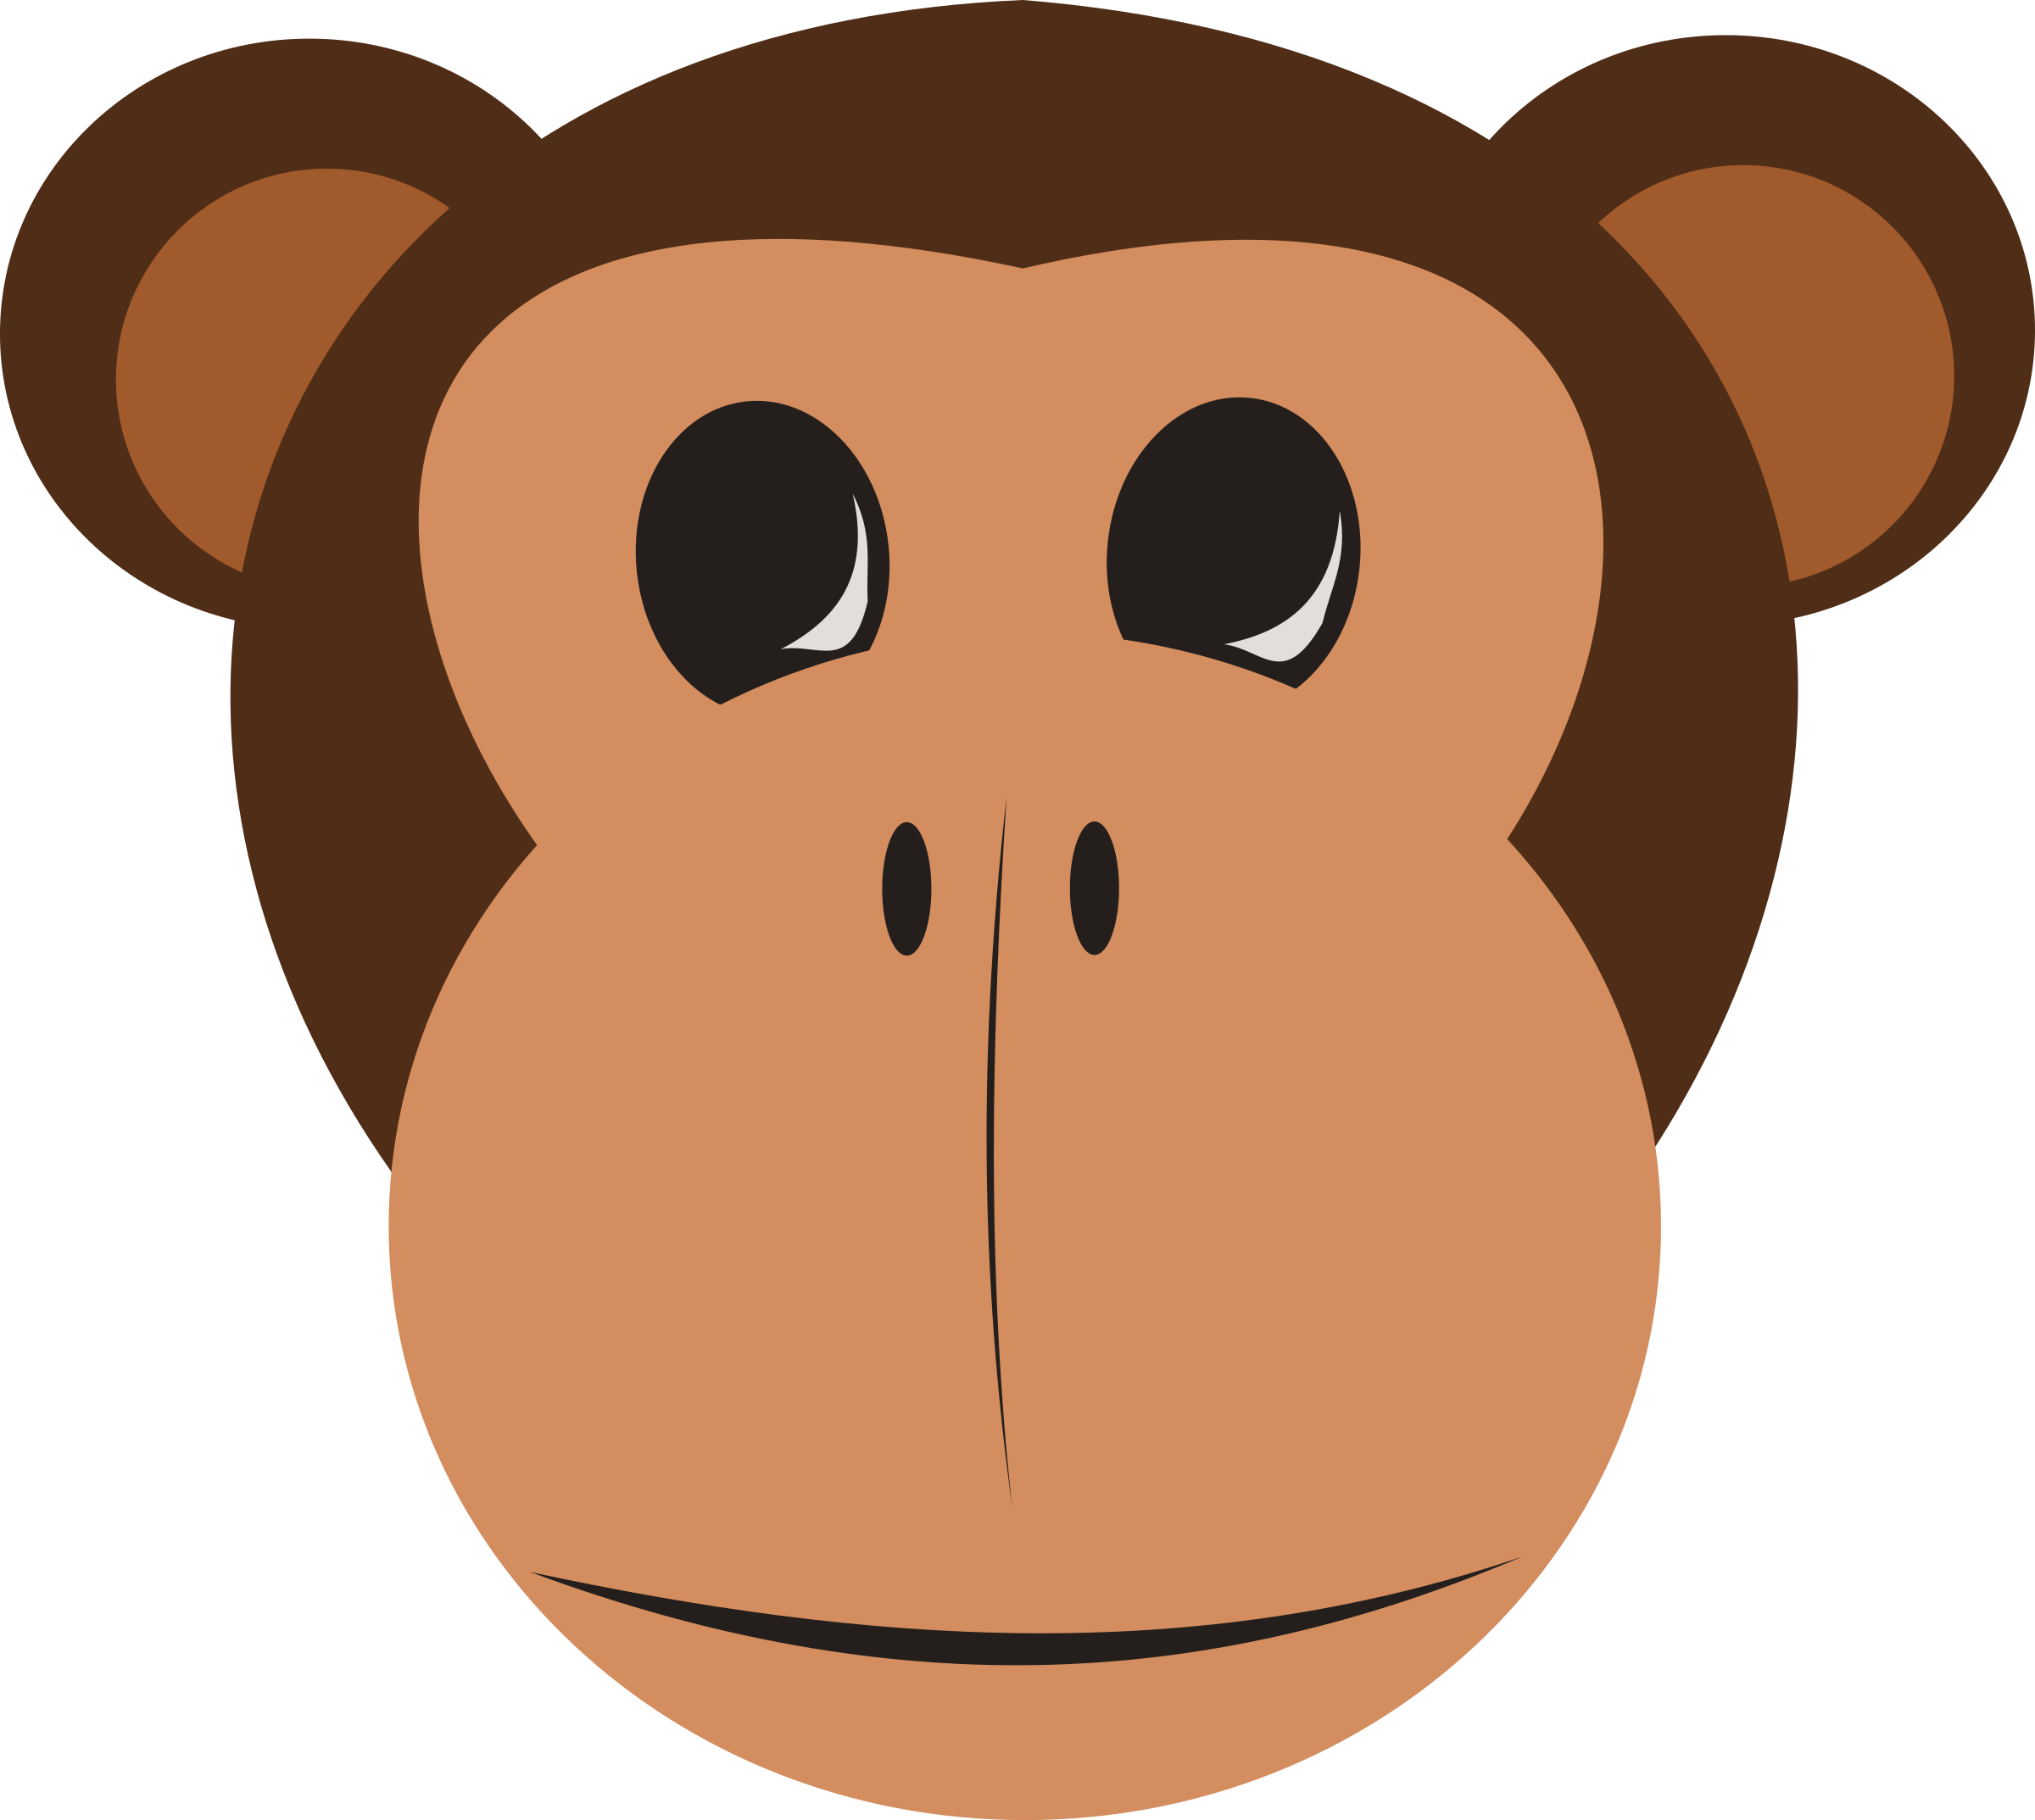 Monkey Face by stevepetmonkey